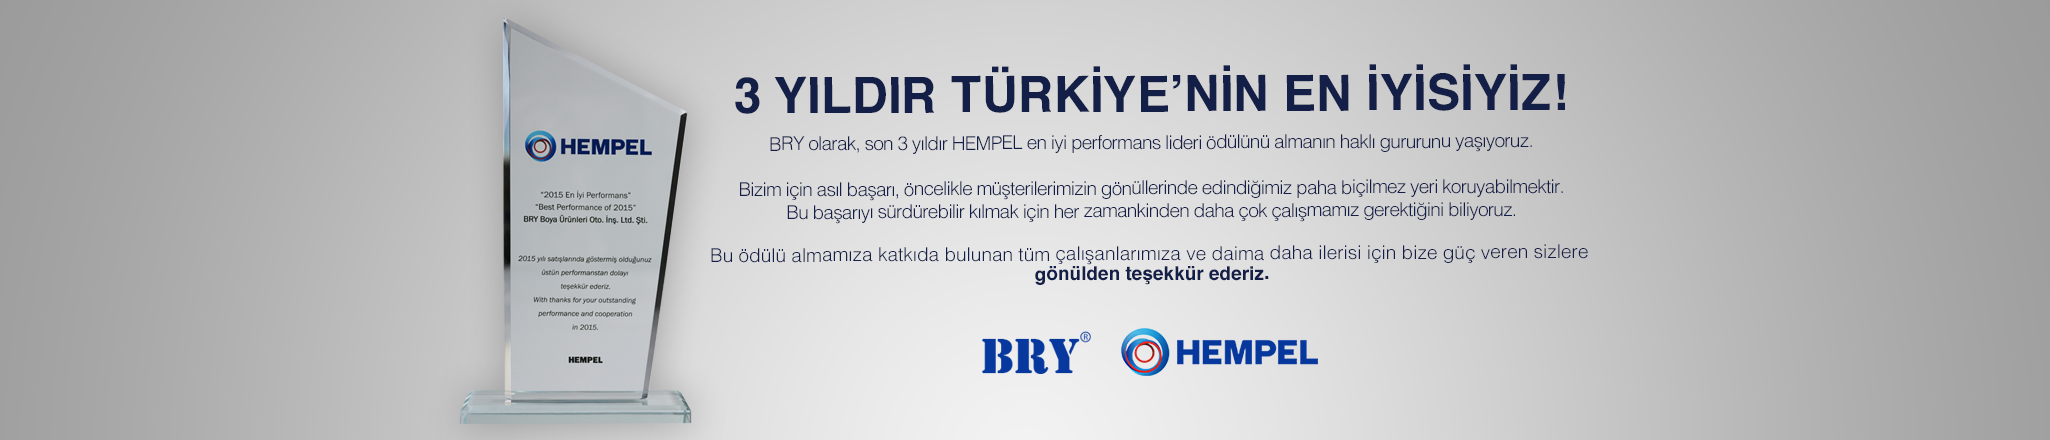 Hempel 2015 En �yi Performans �d�l�